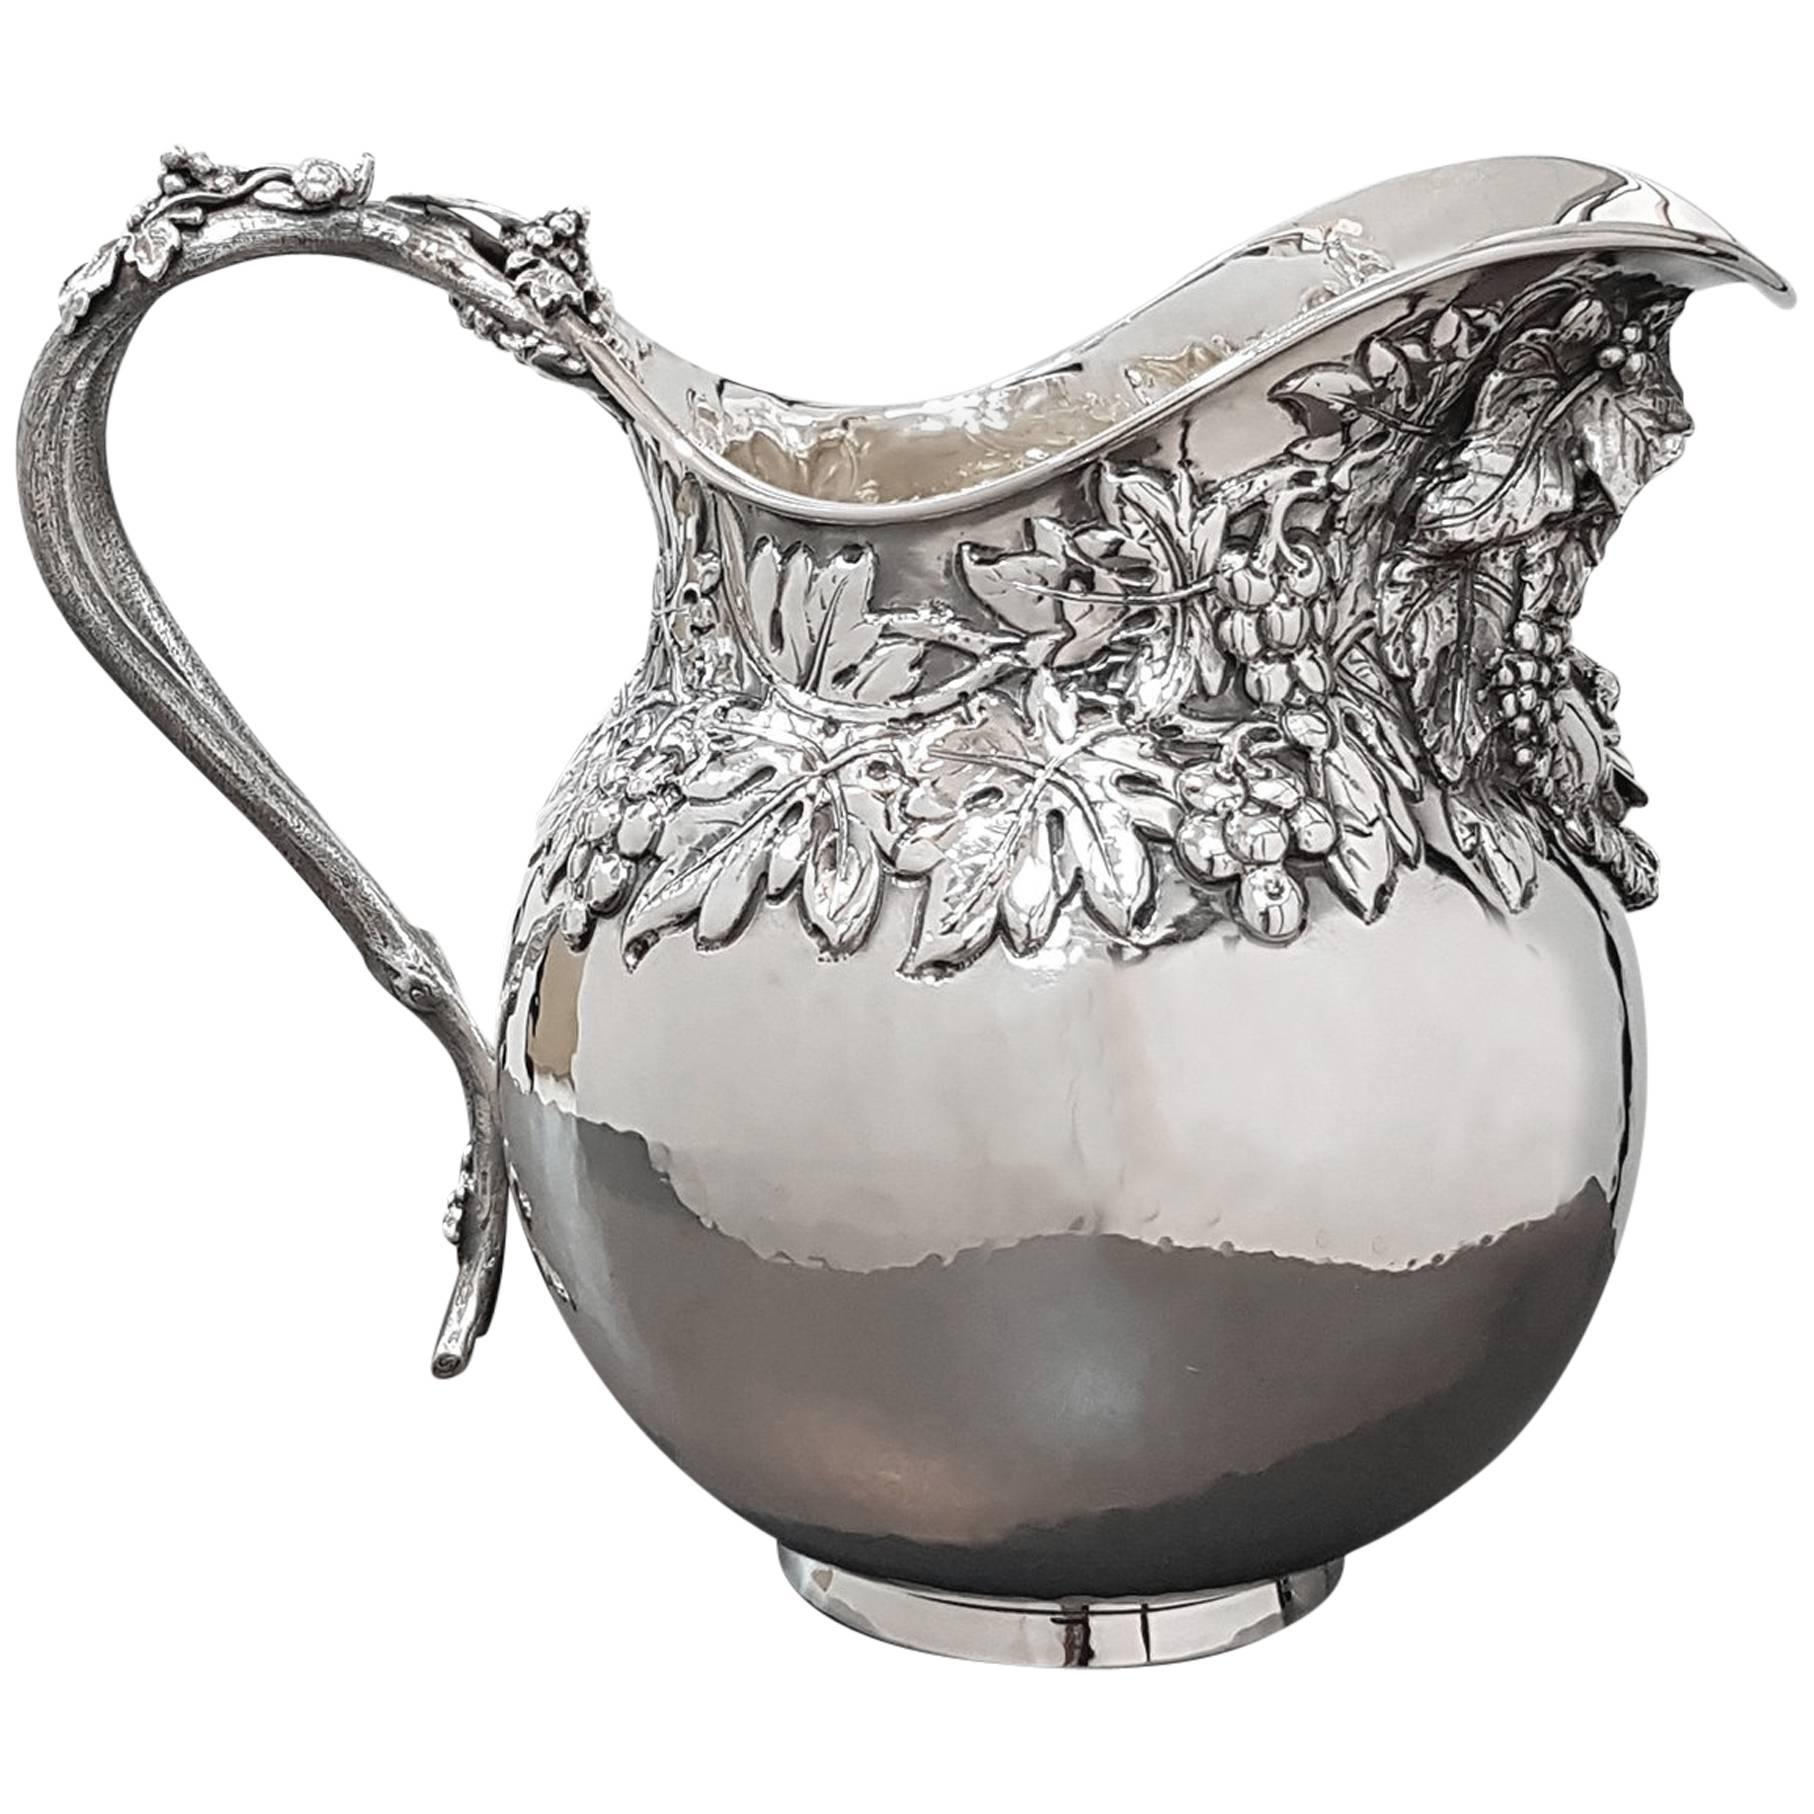 20th Century Italian Bacco's Silver Jug. Handicraft made in Italy